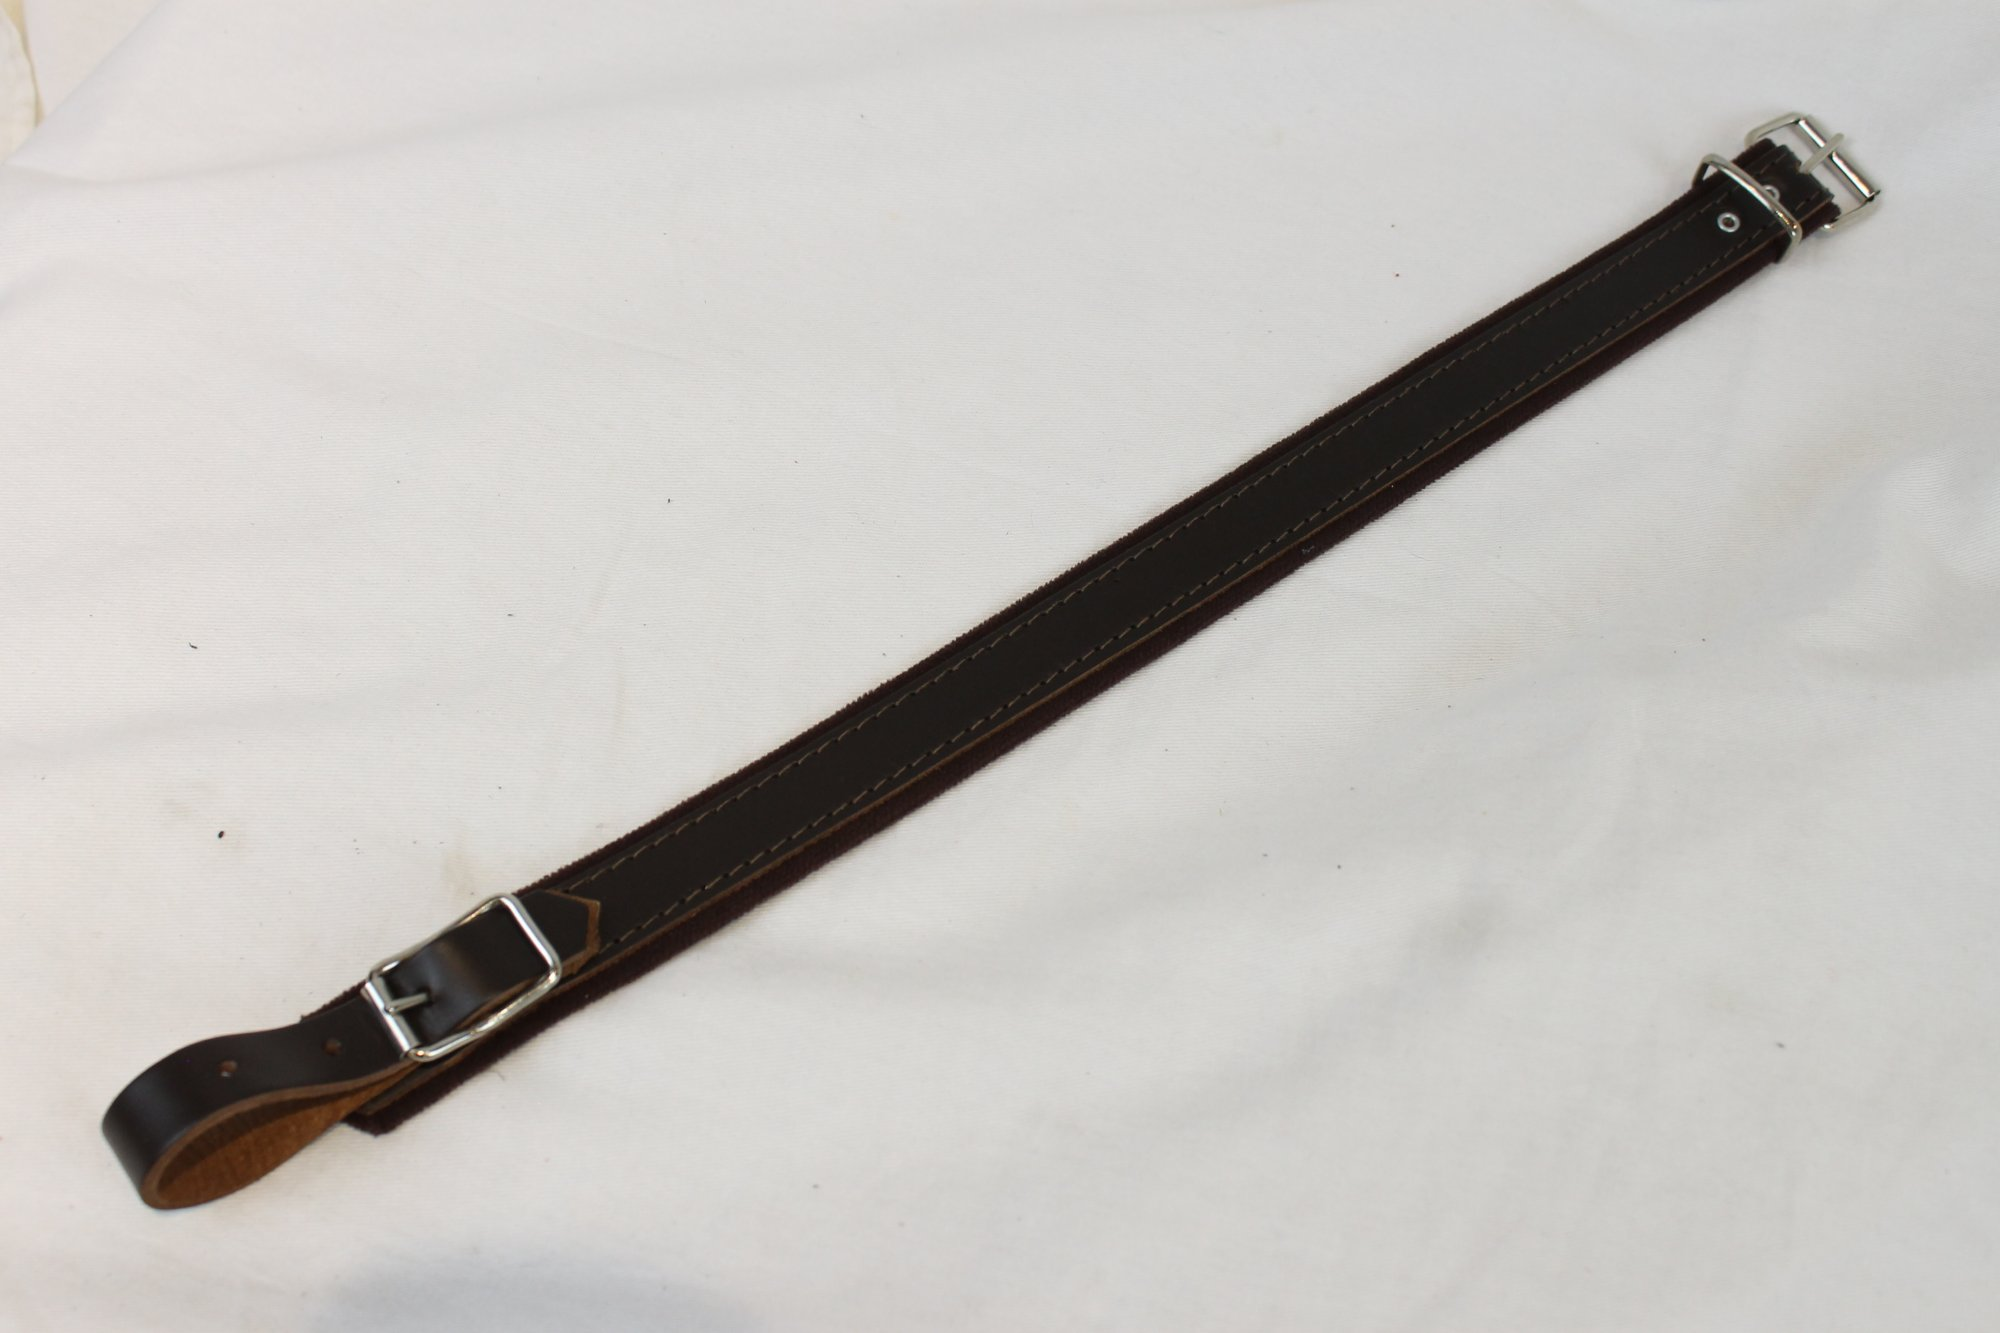 NEW Brown Fuselli Leather Shoulder Strap Extender Width (2.5cm / 1in) Length (39.5cm / 15.5in)